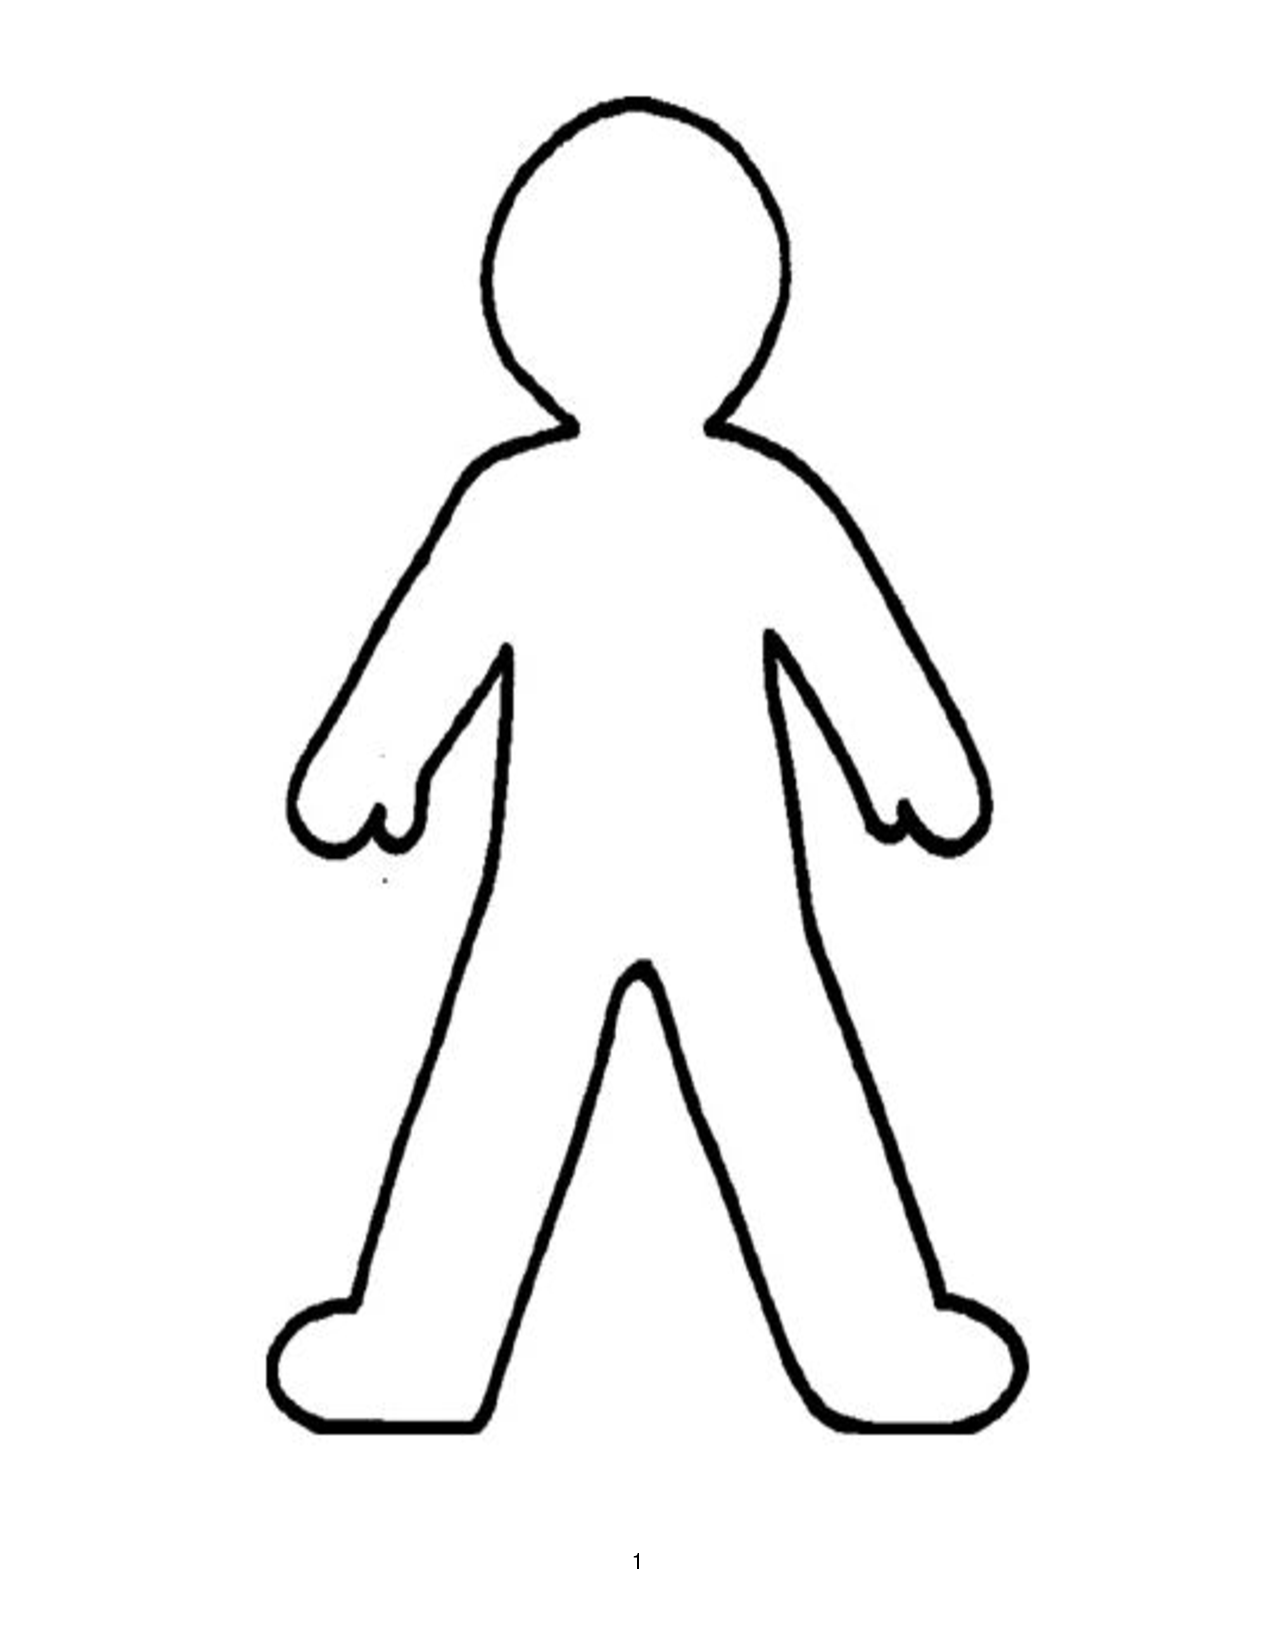 Doll Outline Template   ClipArt Best | printable | Pinterest